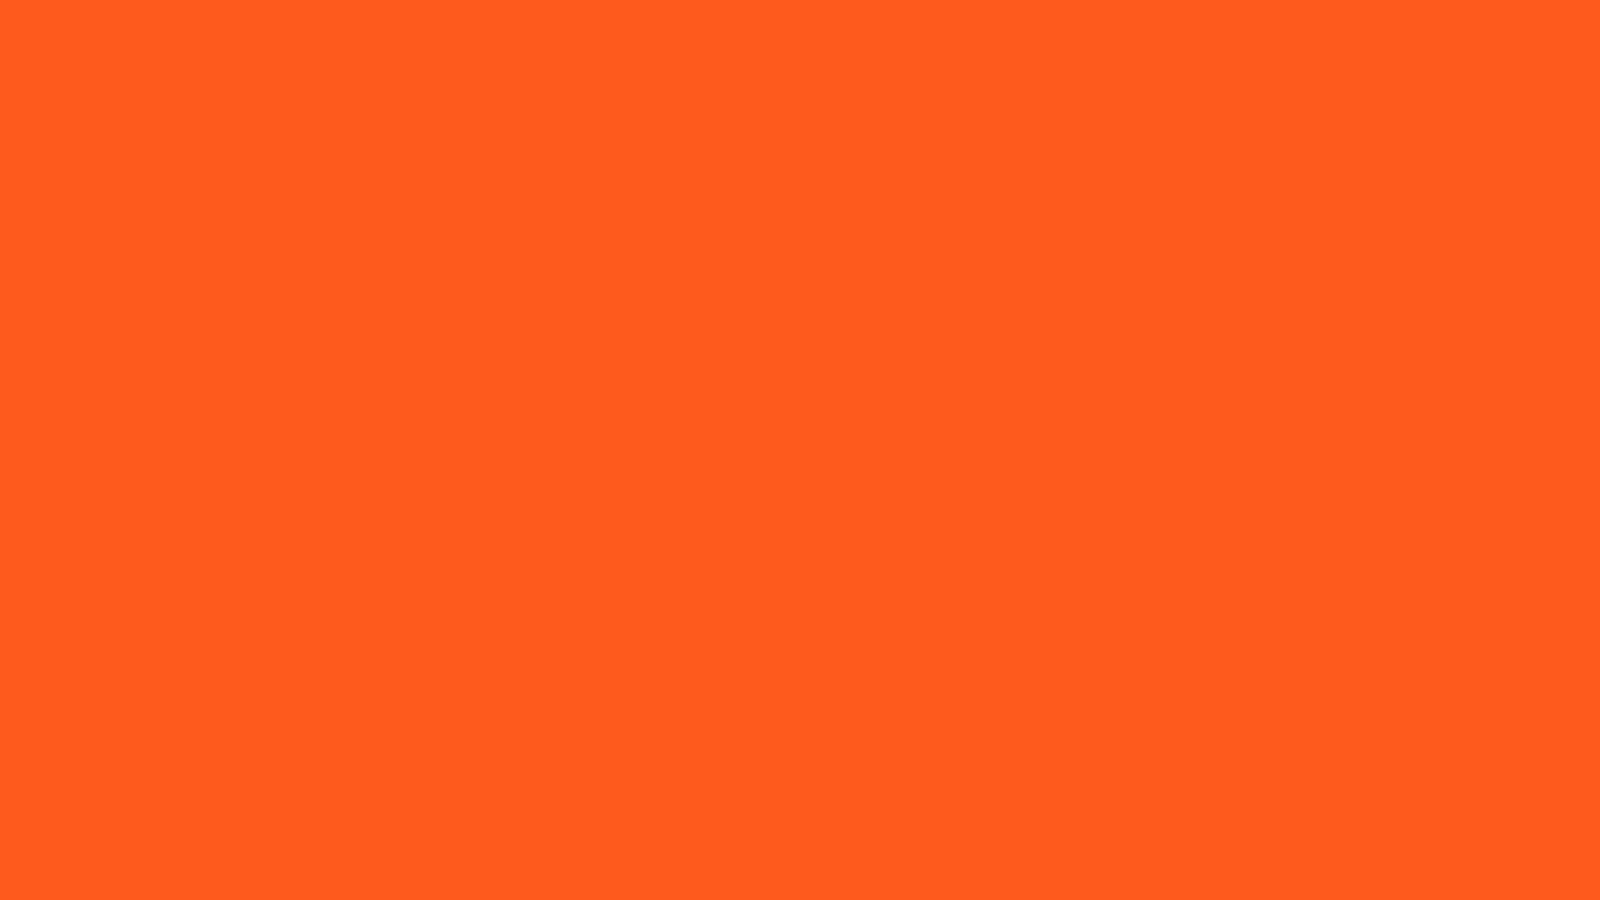 1600x900 Giants Orange Solid Color Background